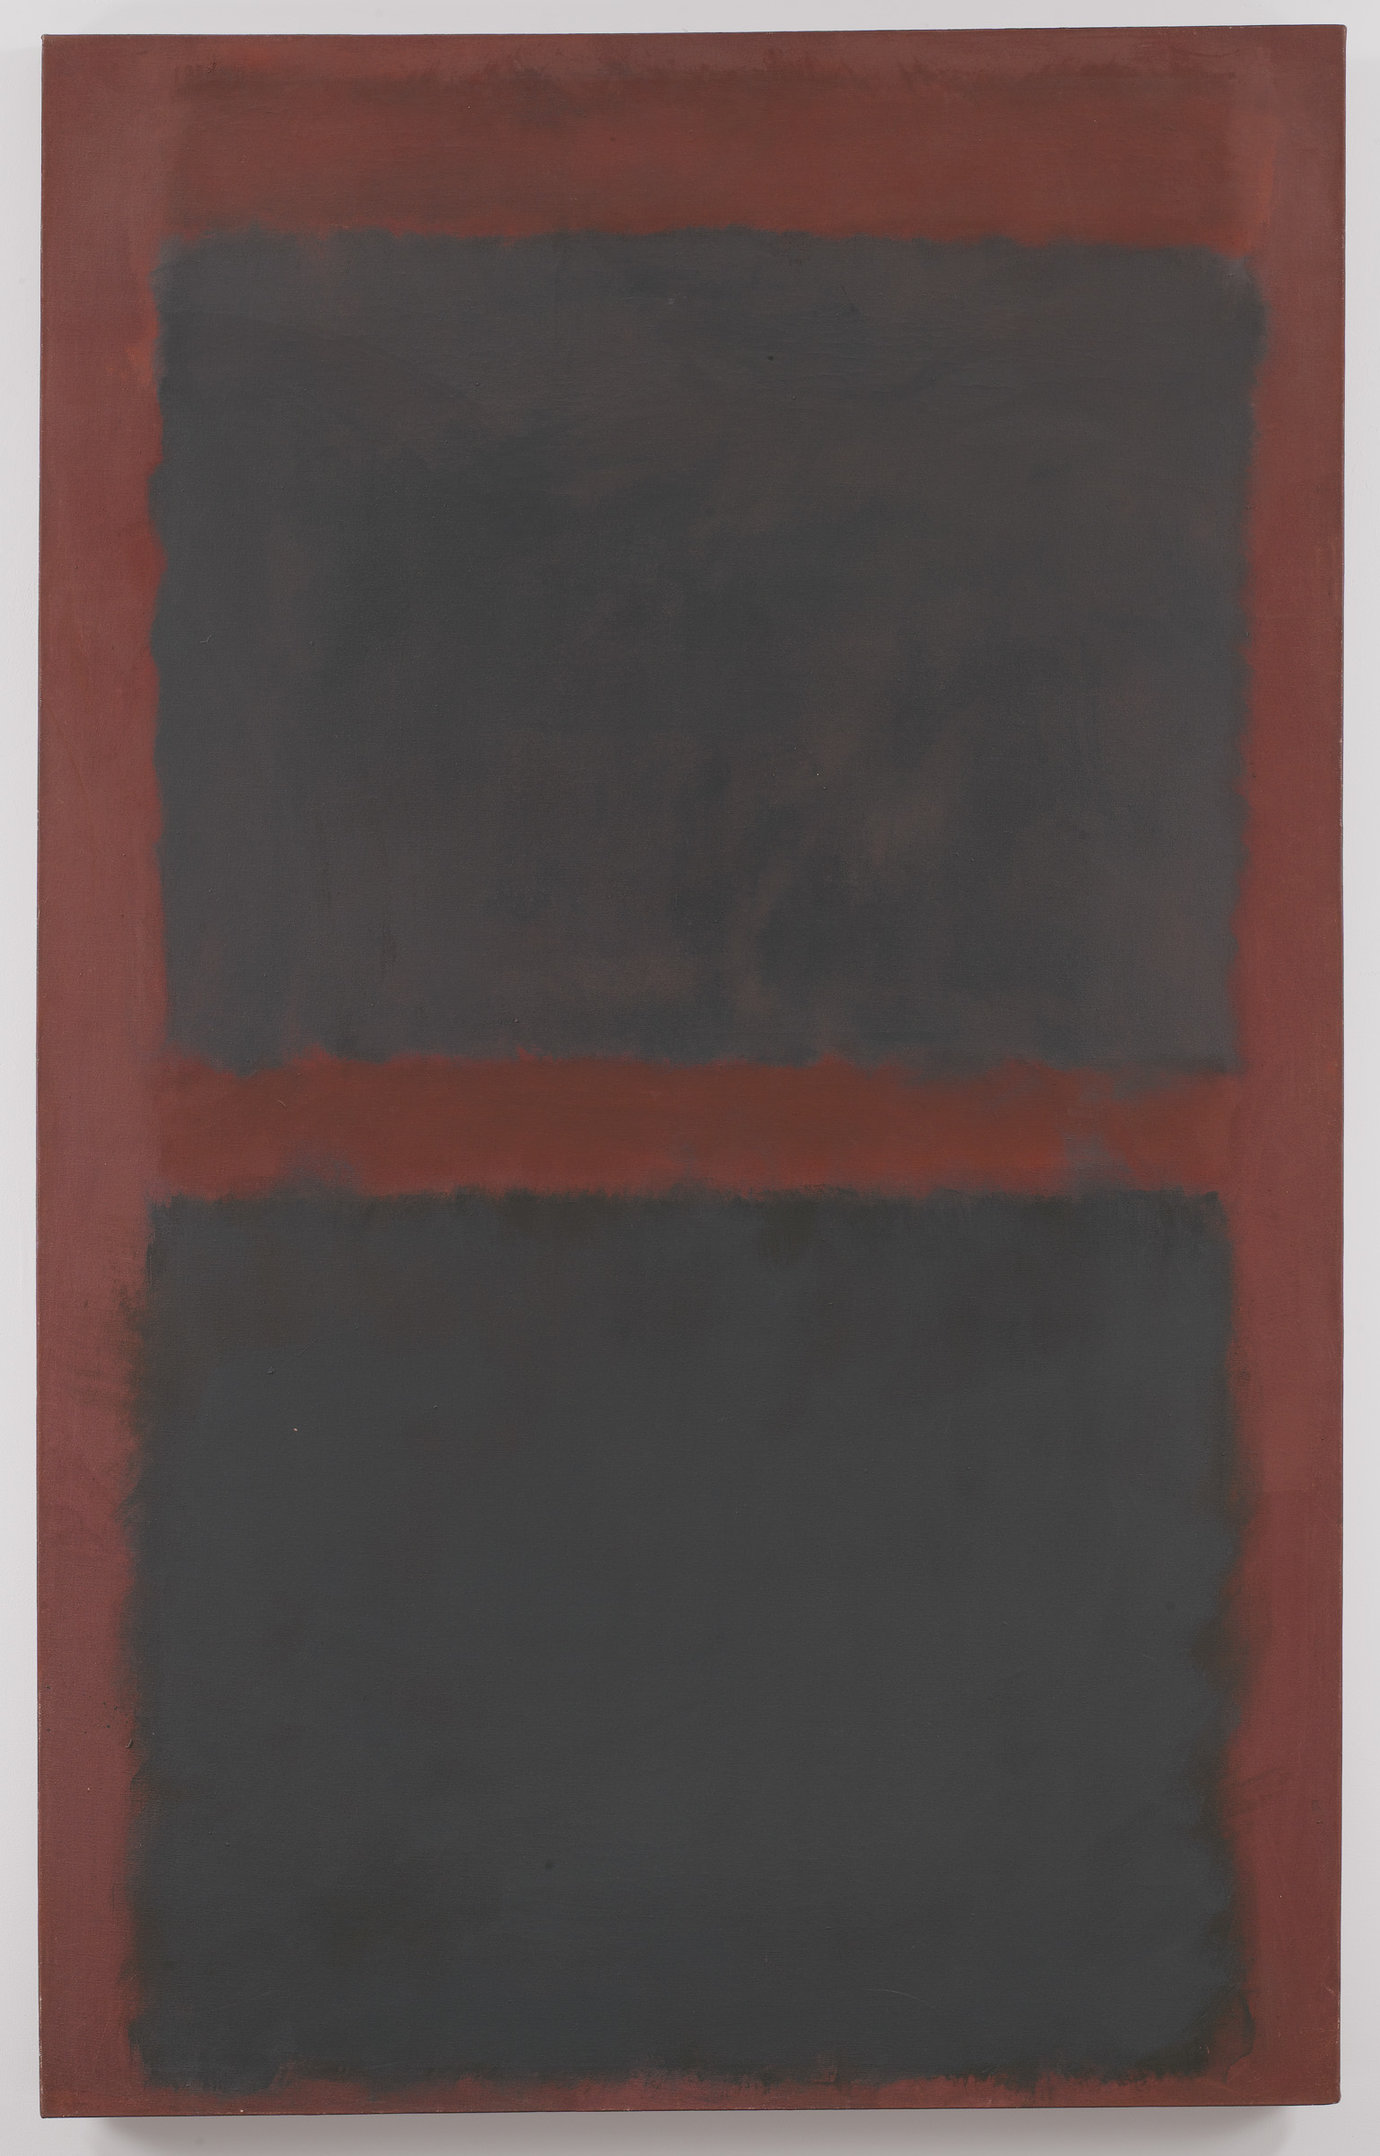 ", 1958. Oil on canvas, 72"" x 45"" (182.9 cm x 114.3 cm)."